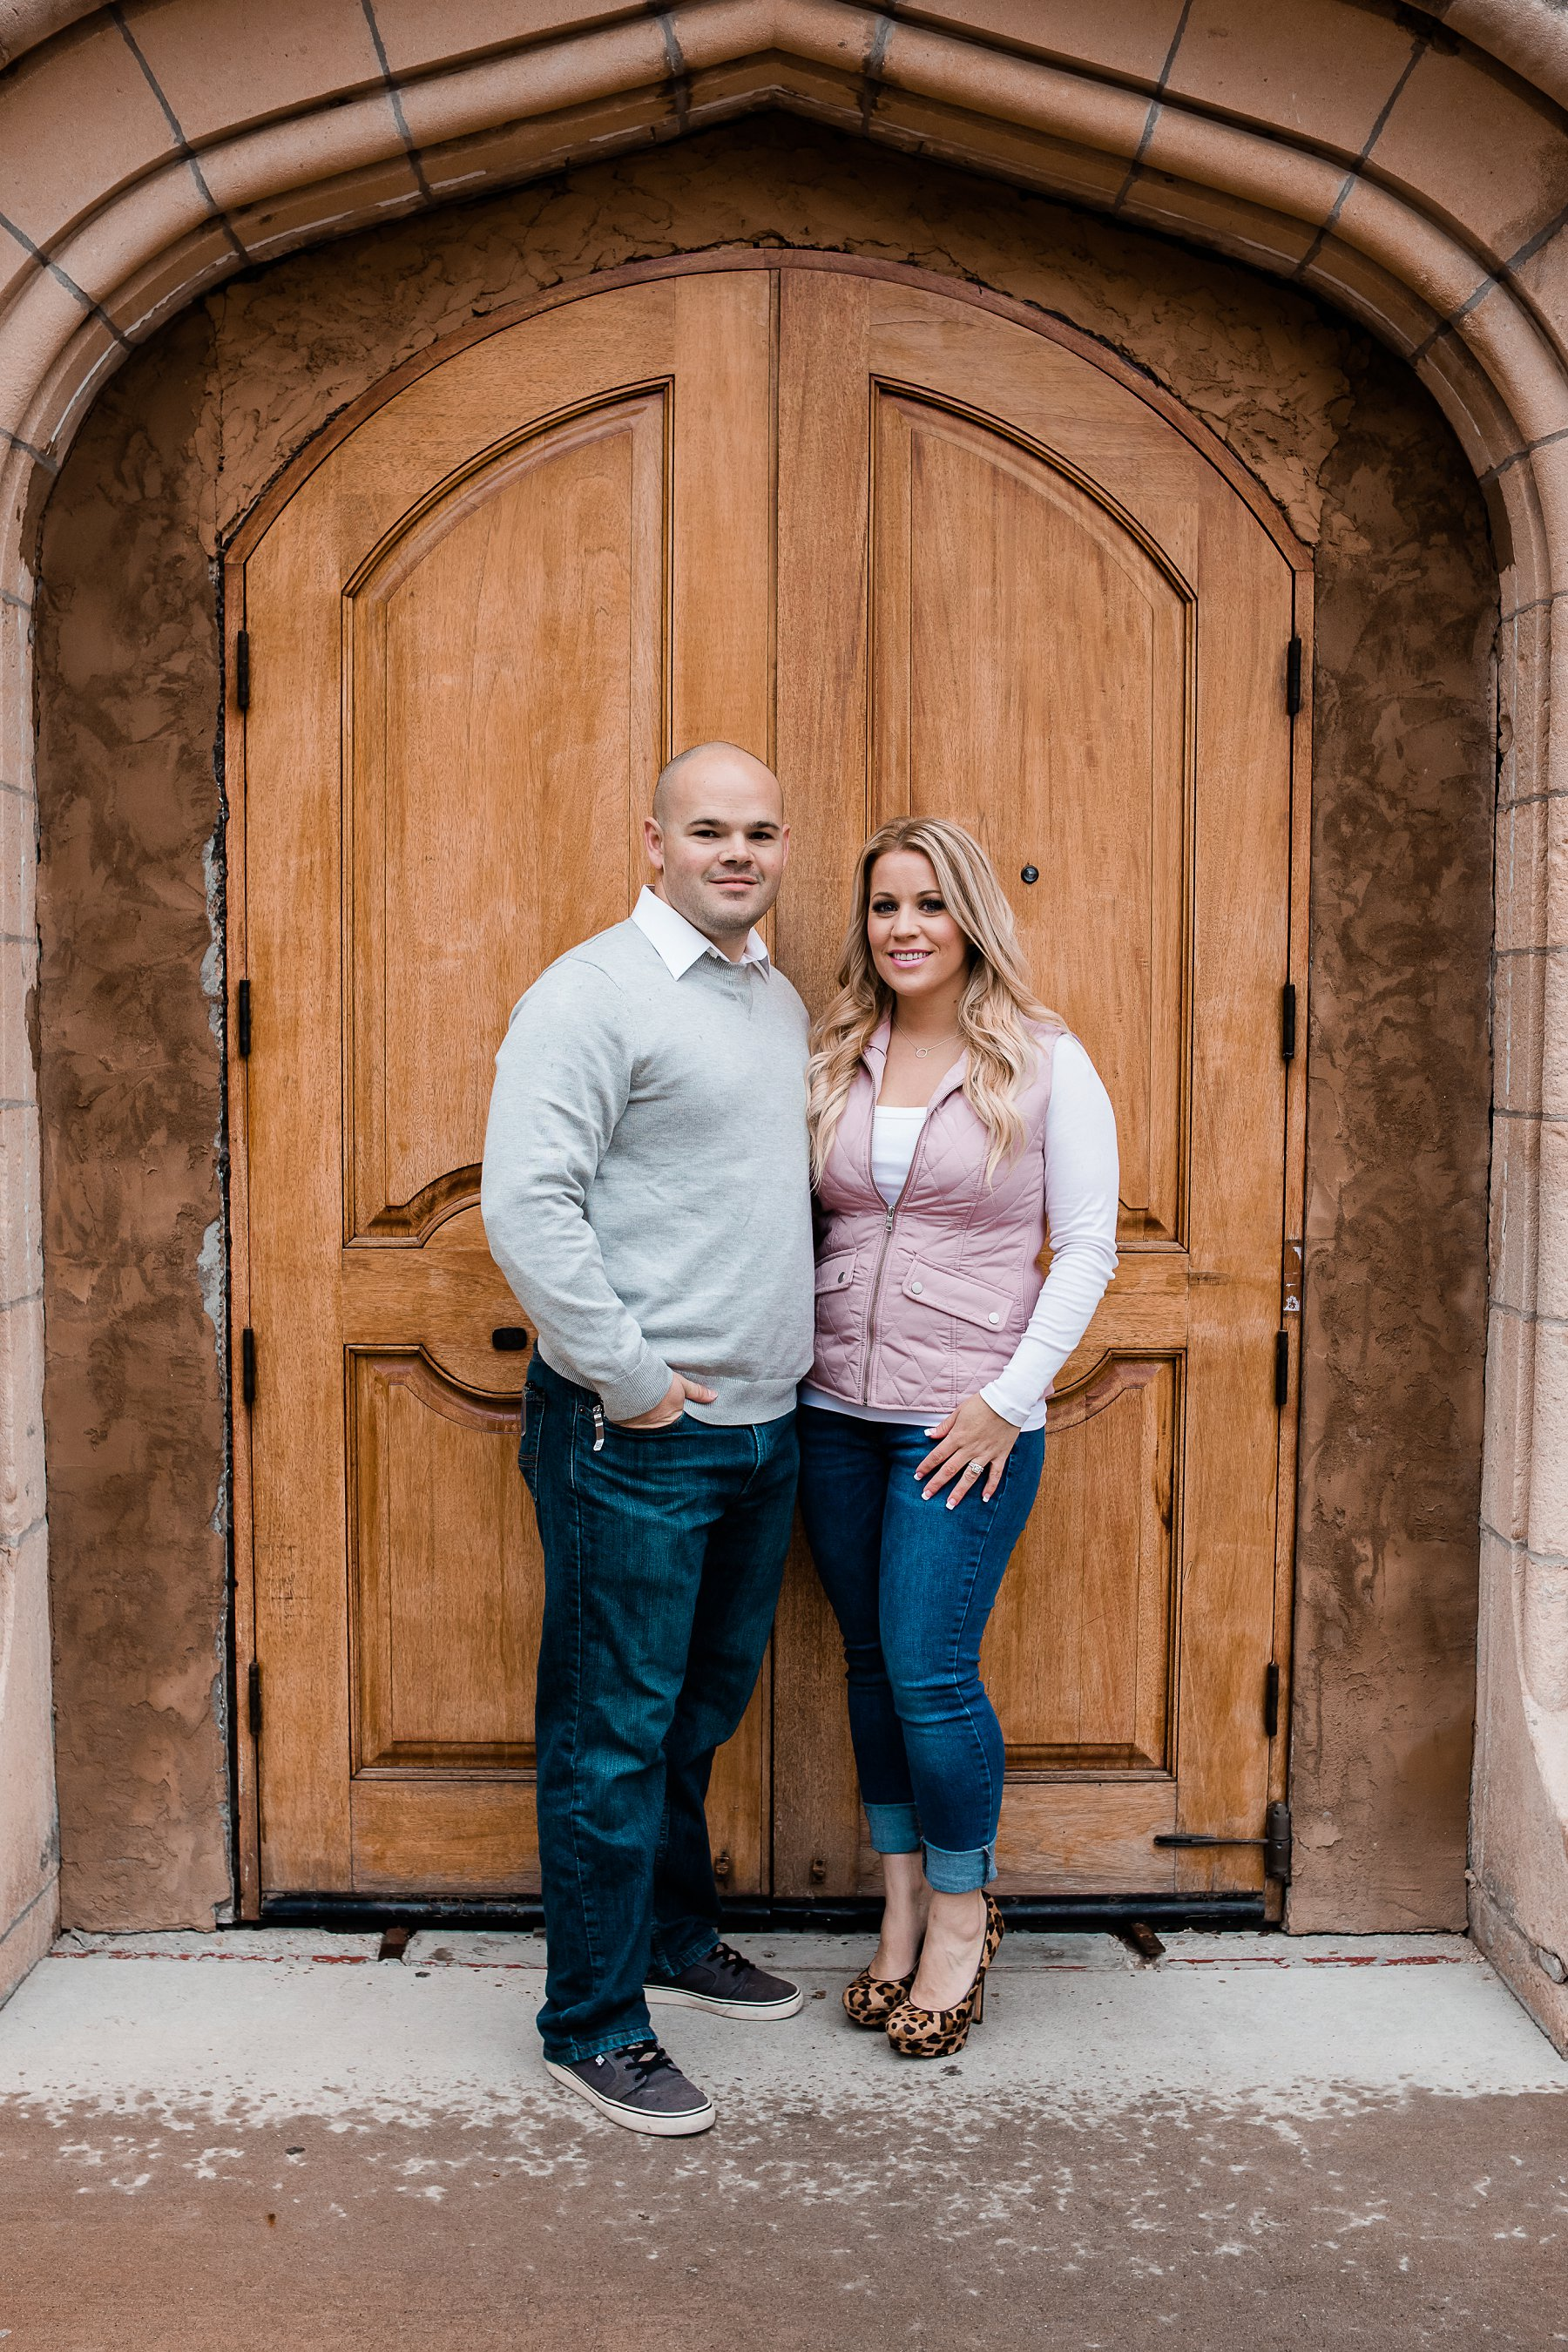 Fall Family Photography at Belvoir WInery by Family Photographer in Kansas City, Merry Ohler (6)